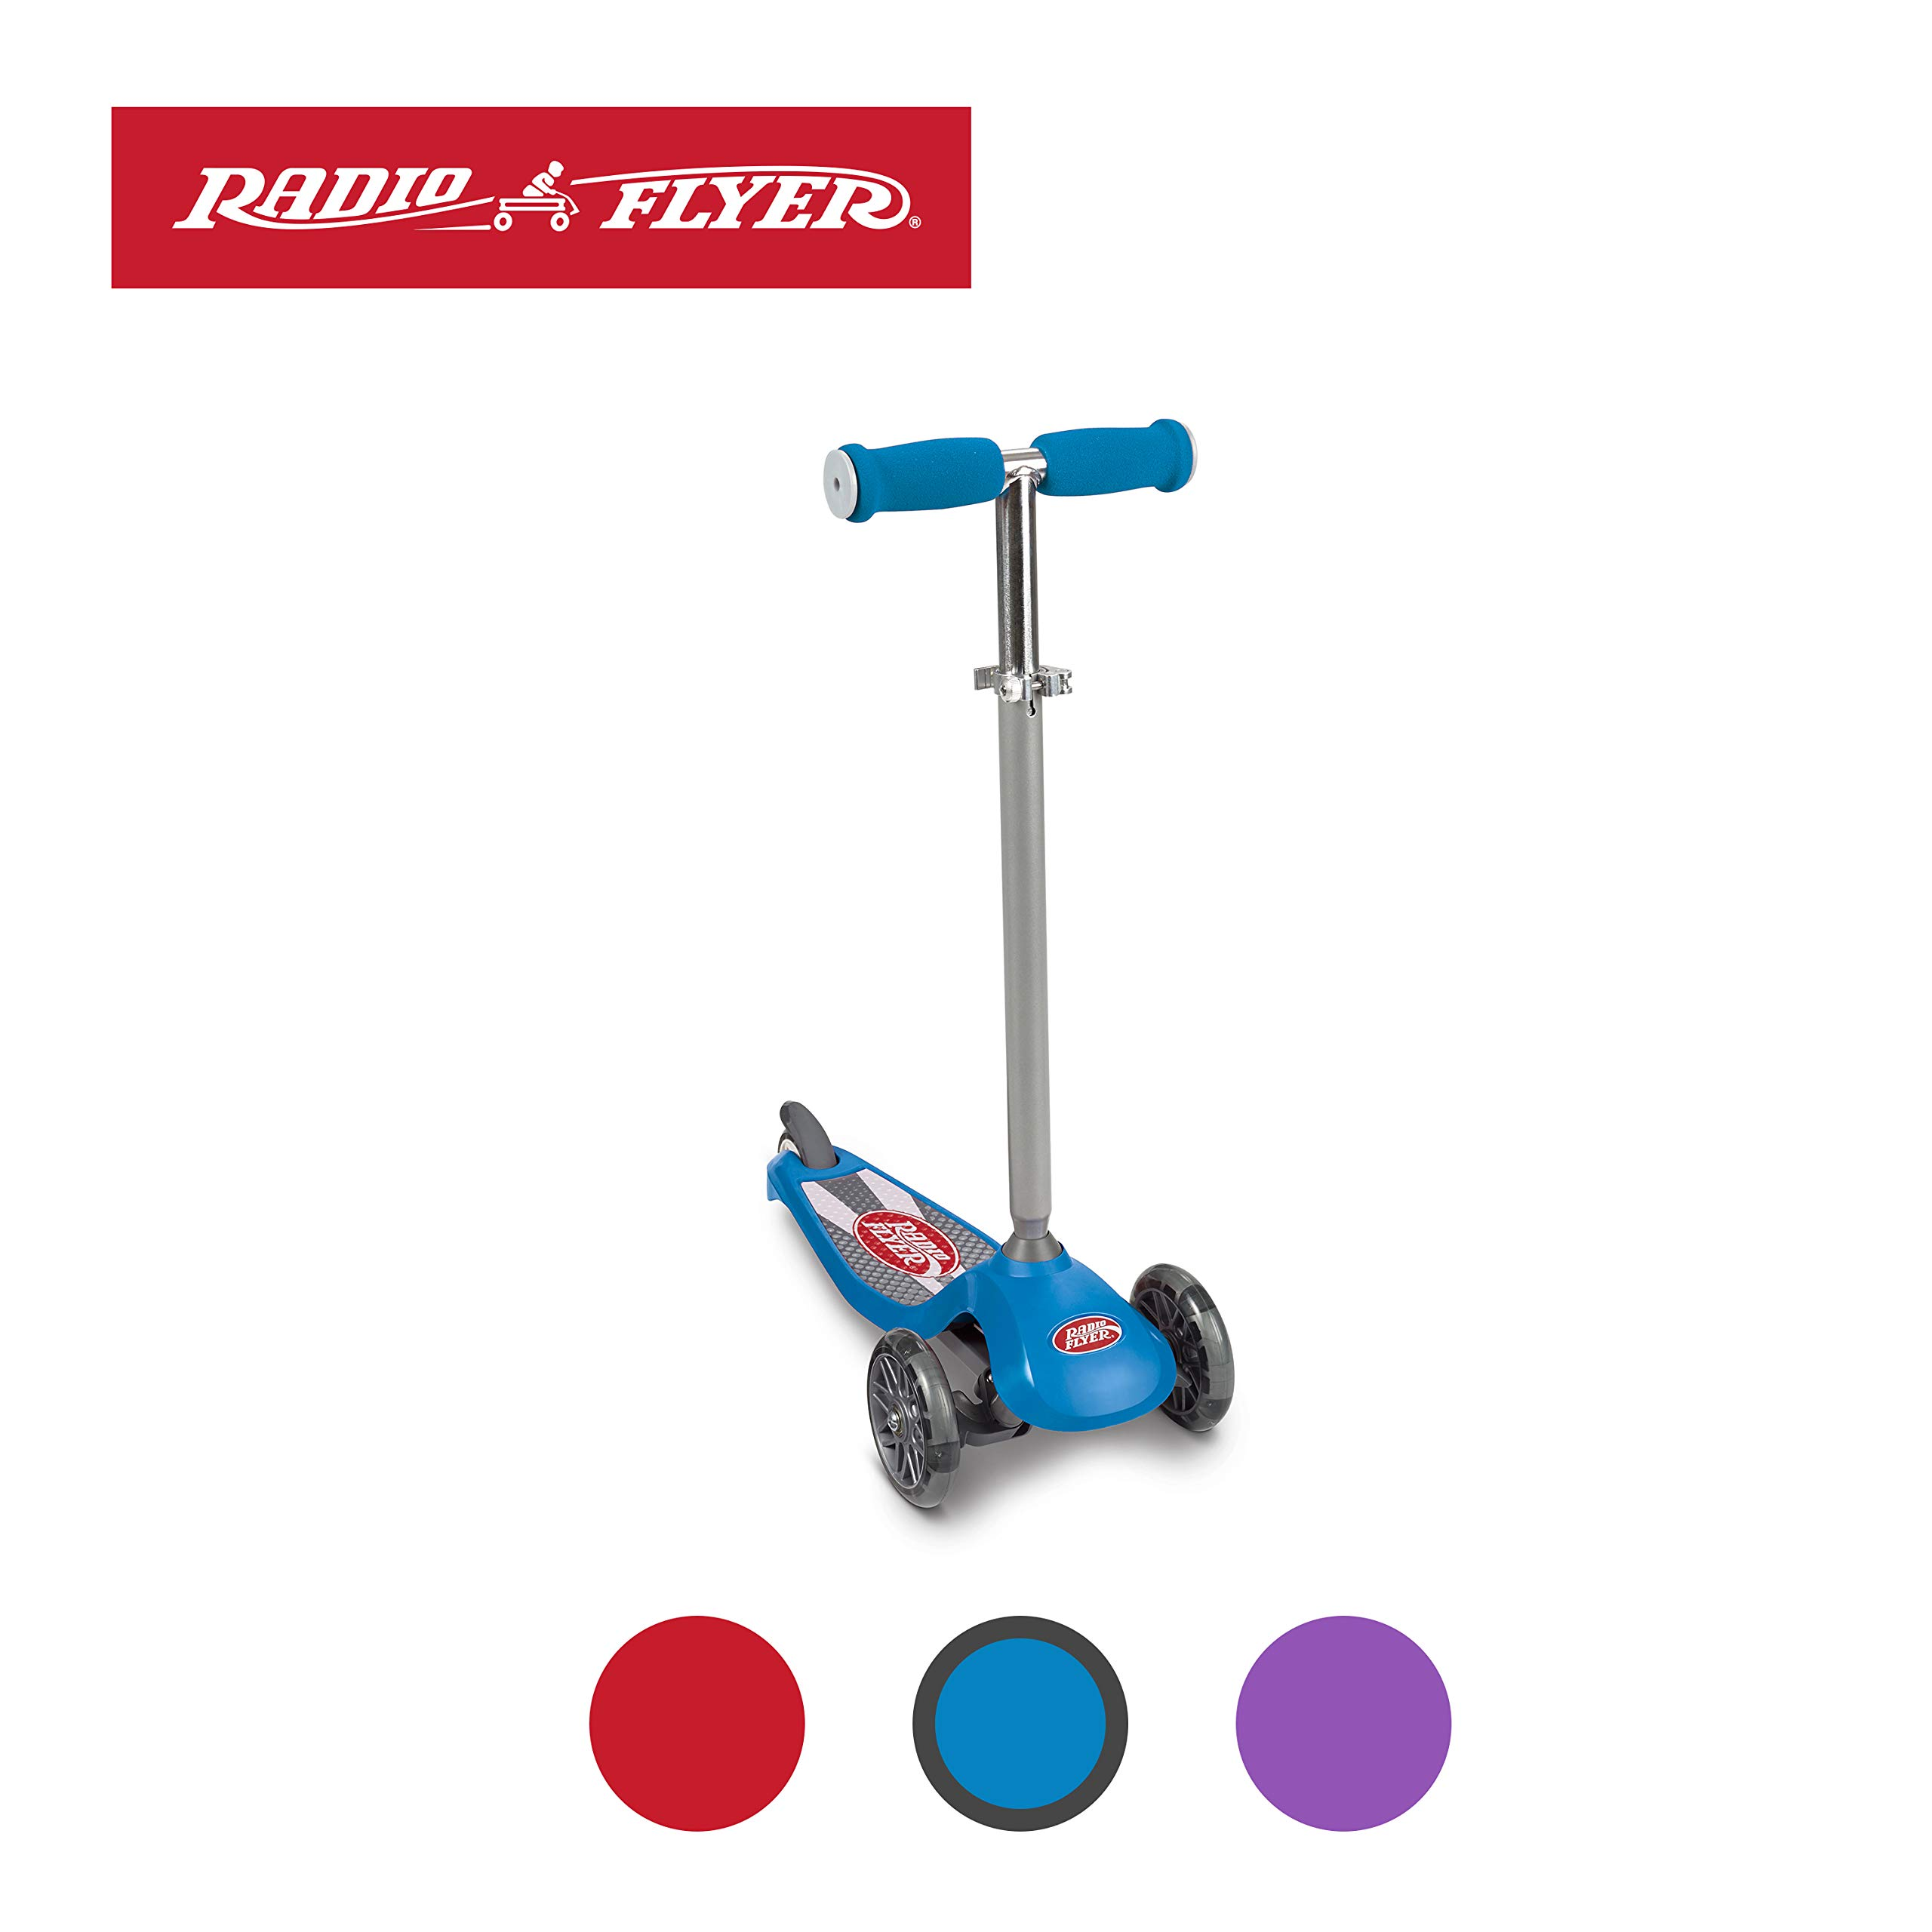 Radio Flyer Lean 'N Glide Scooter with Light Up Wheels Kids Scooters Blue by Radio Flyer